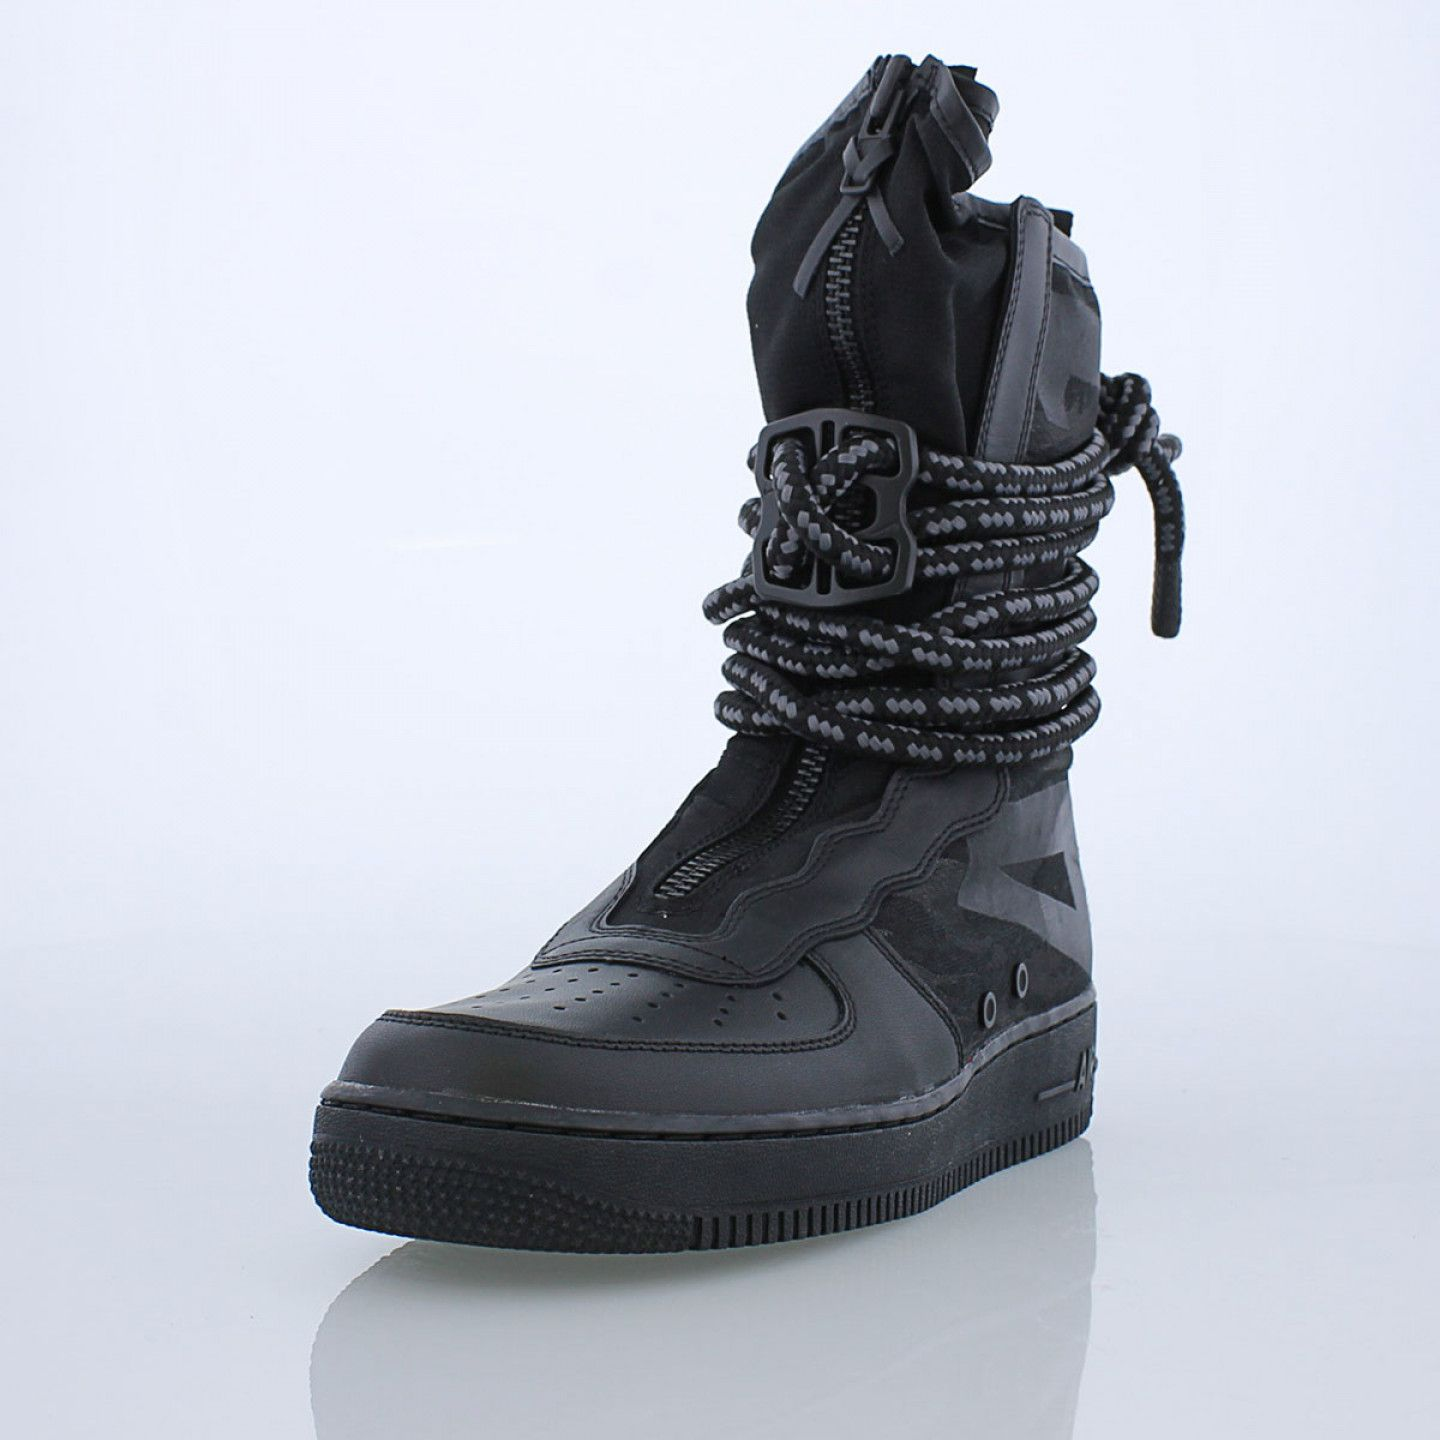 The Military Inspired Nike Sf Air Force 1 High Men S Boot Is Built For Ultimate Urban Utility It Features Ballistic Mesh A Q Nike High End Fashion Metal Lace